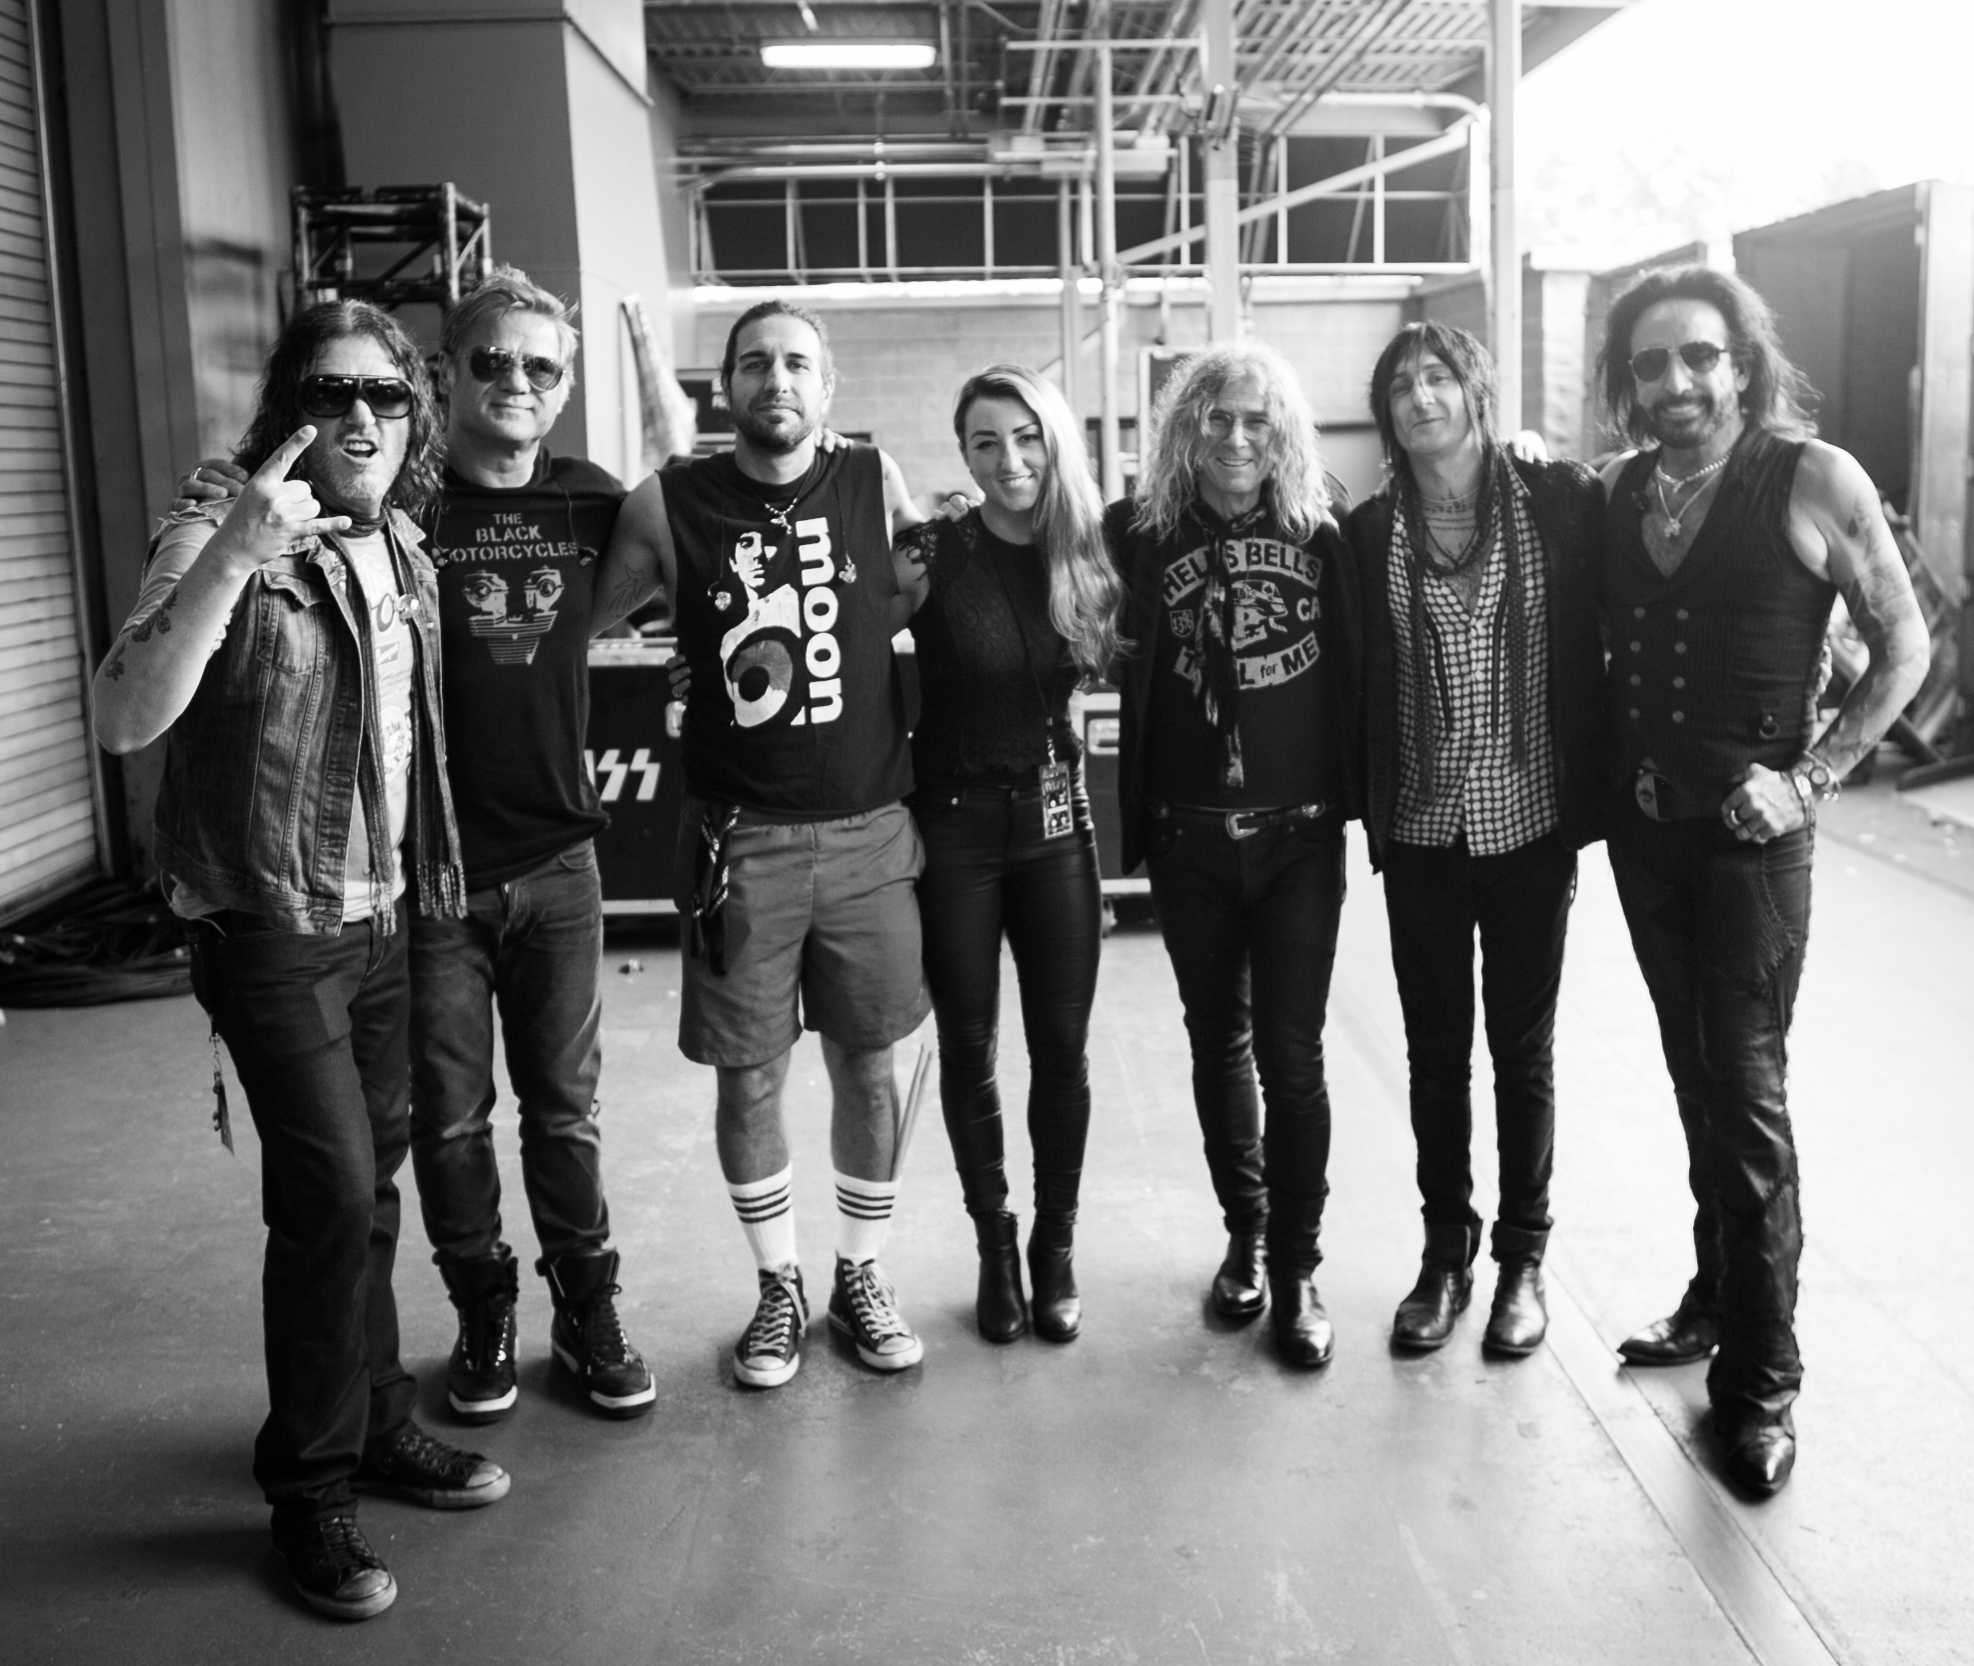 2. Hayley and The Dead Daisies (derrr)